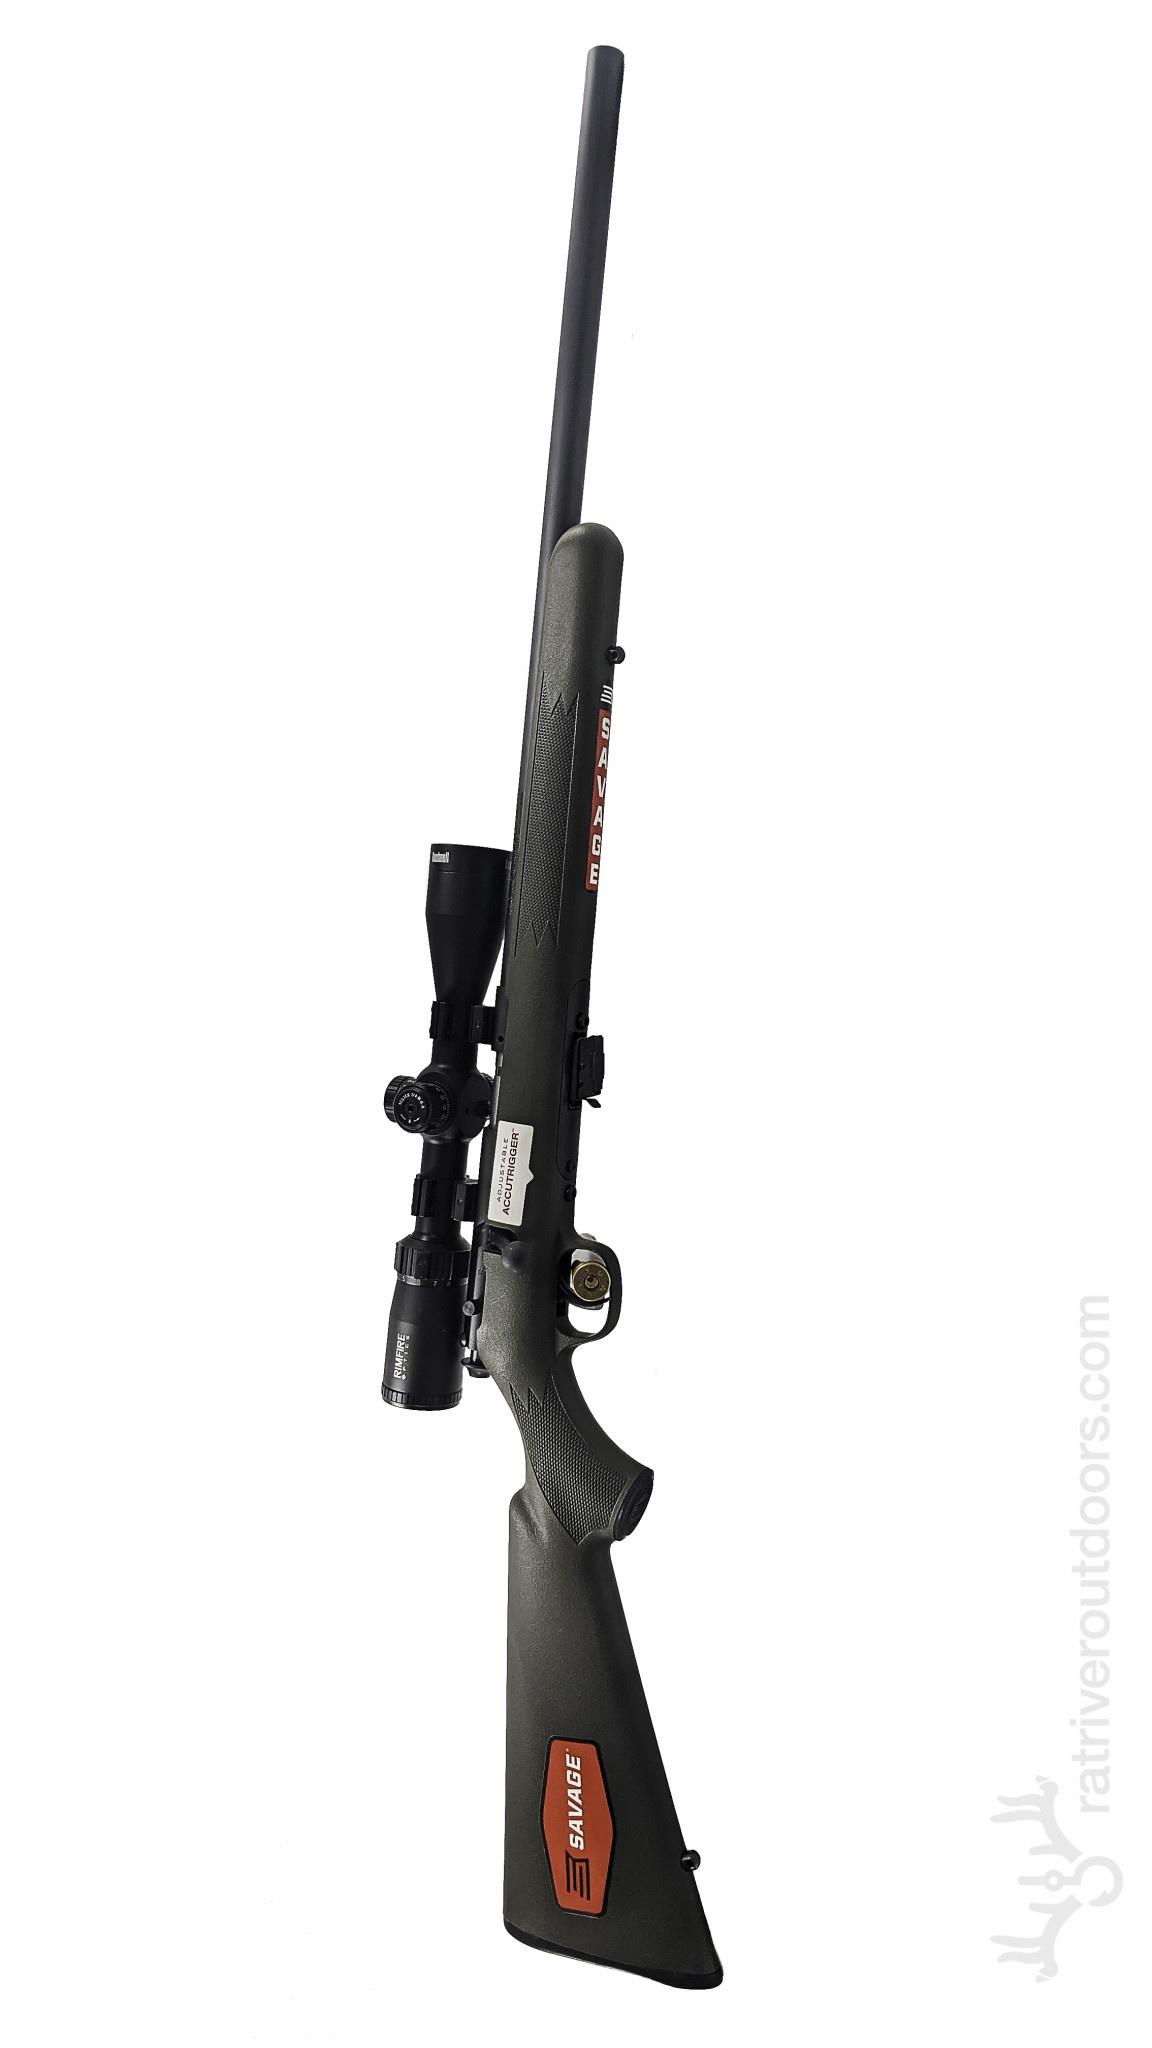 Savage Mark II .22lr Bushnell Scope Combo (Green)